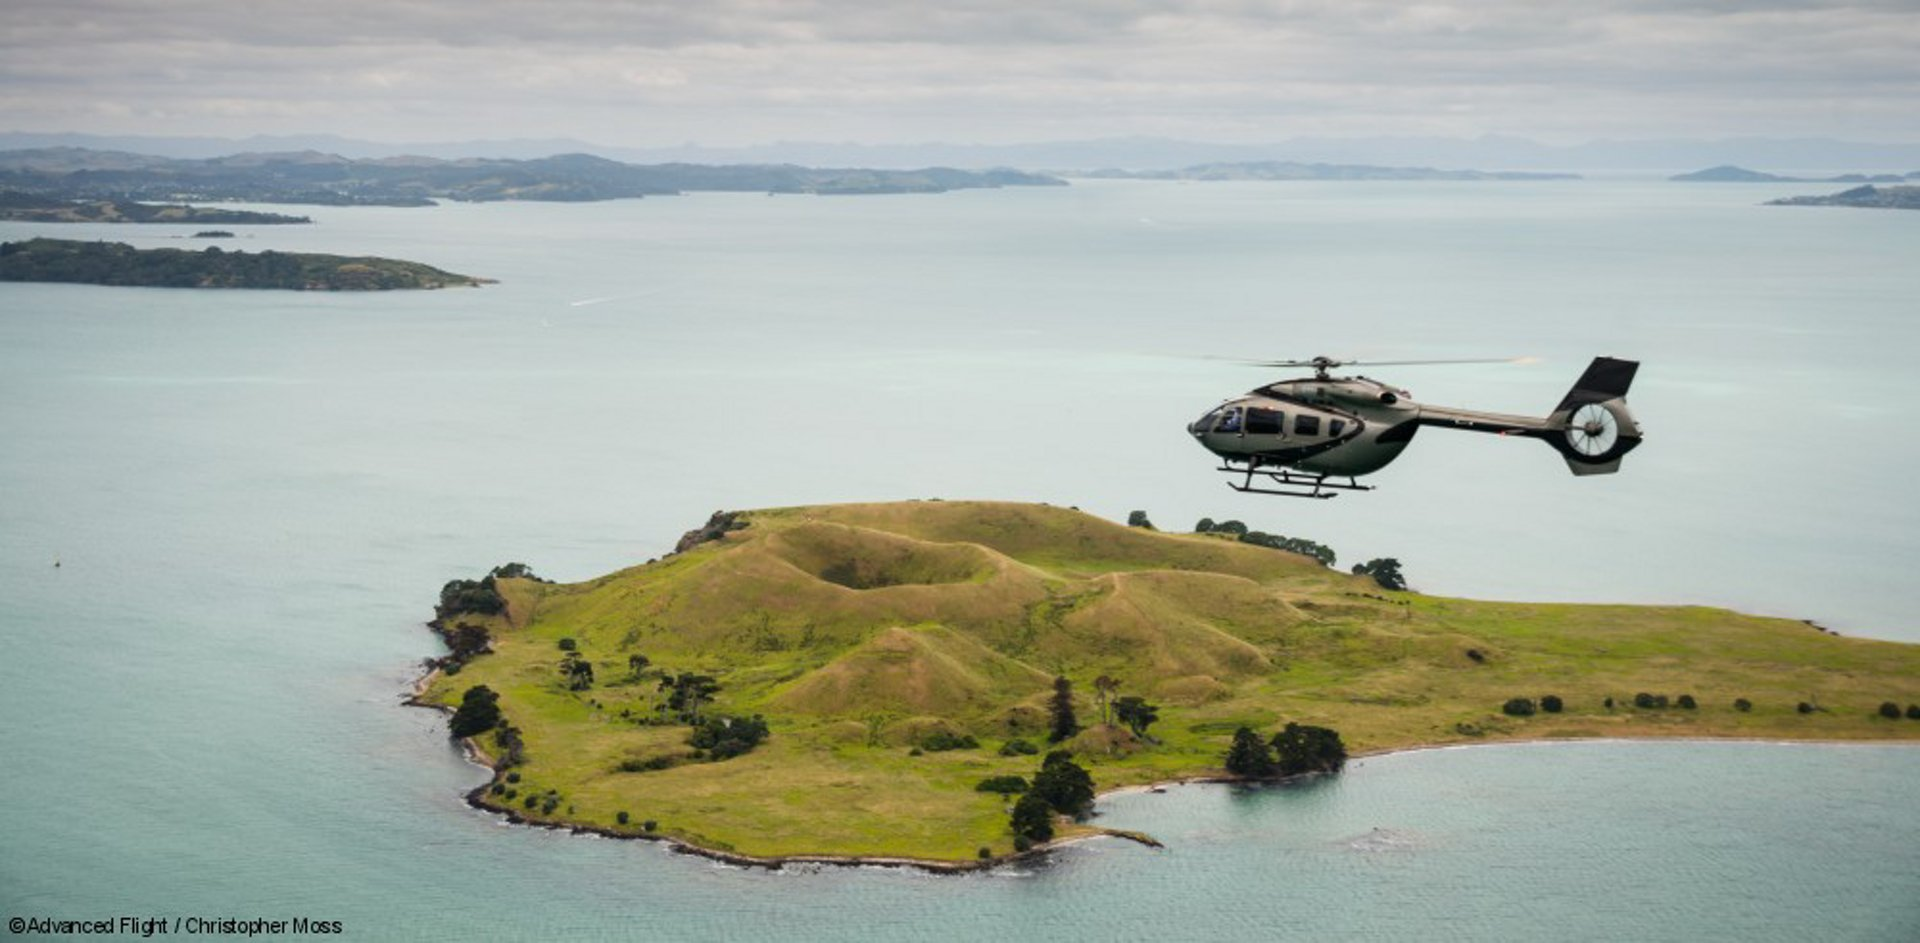 H145 Delivers Safety And Performance For New Zealand VIP Transport Operator